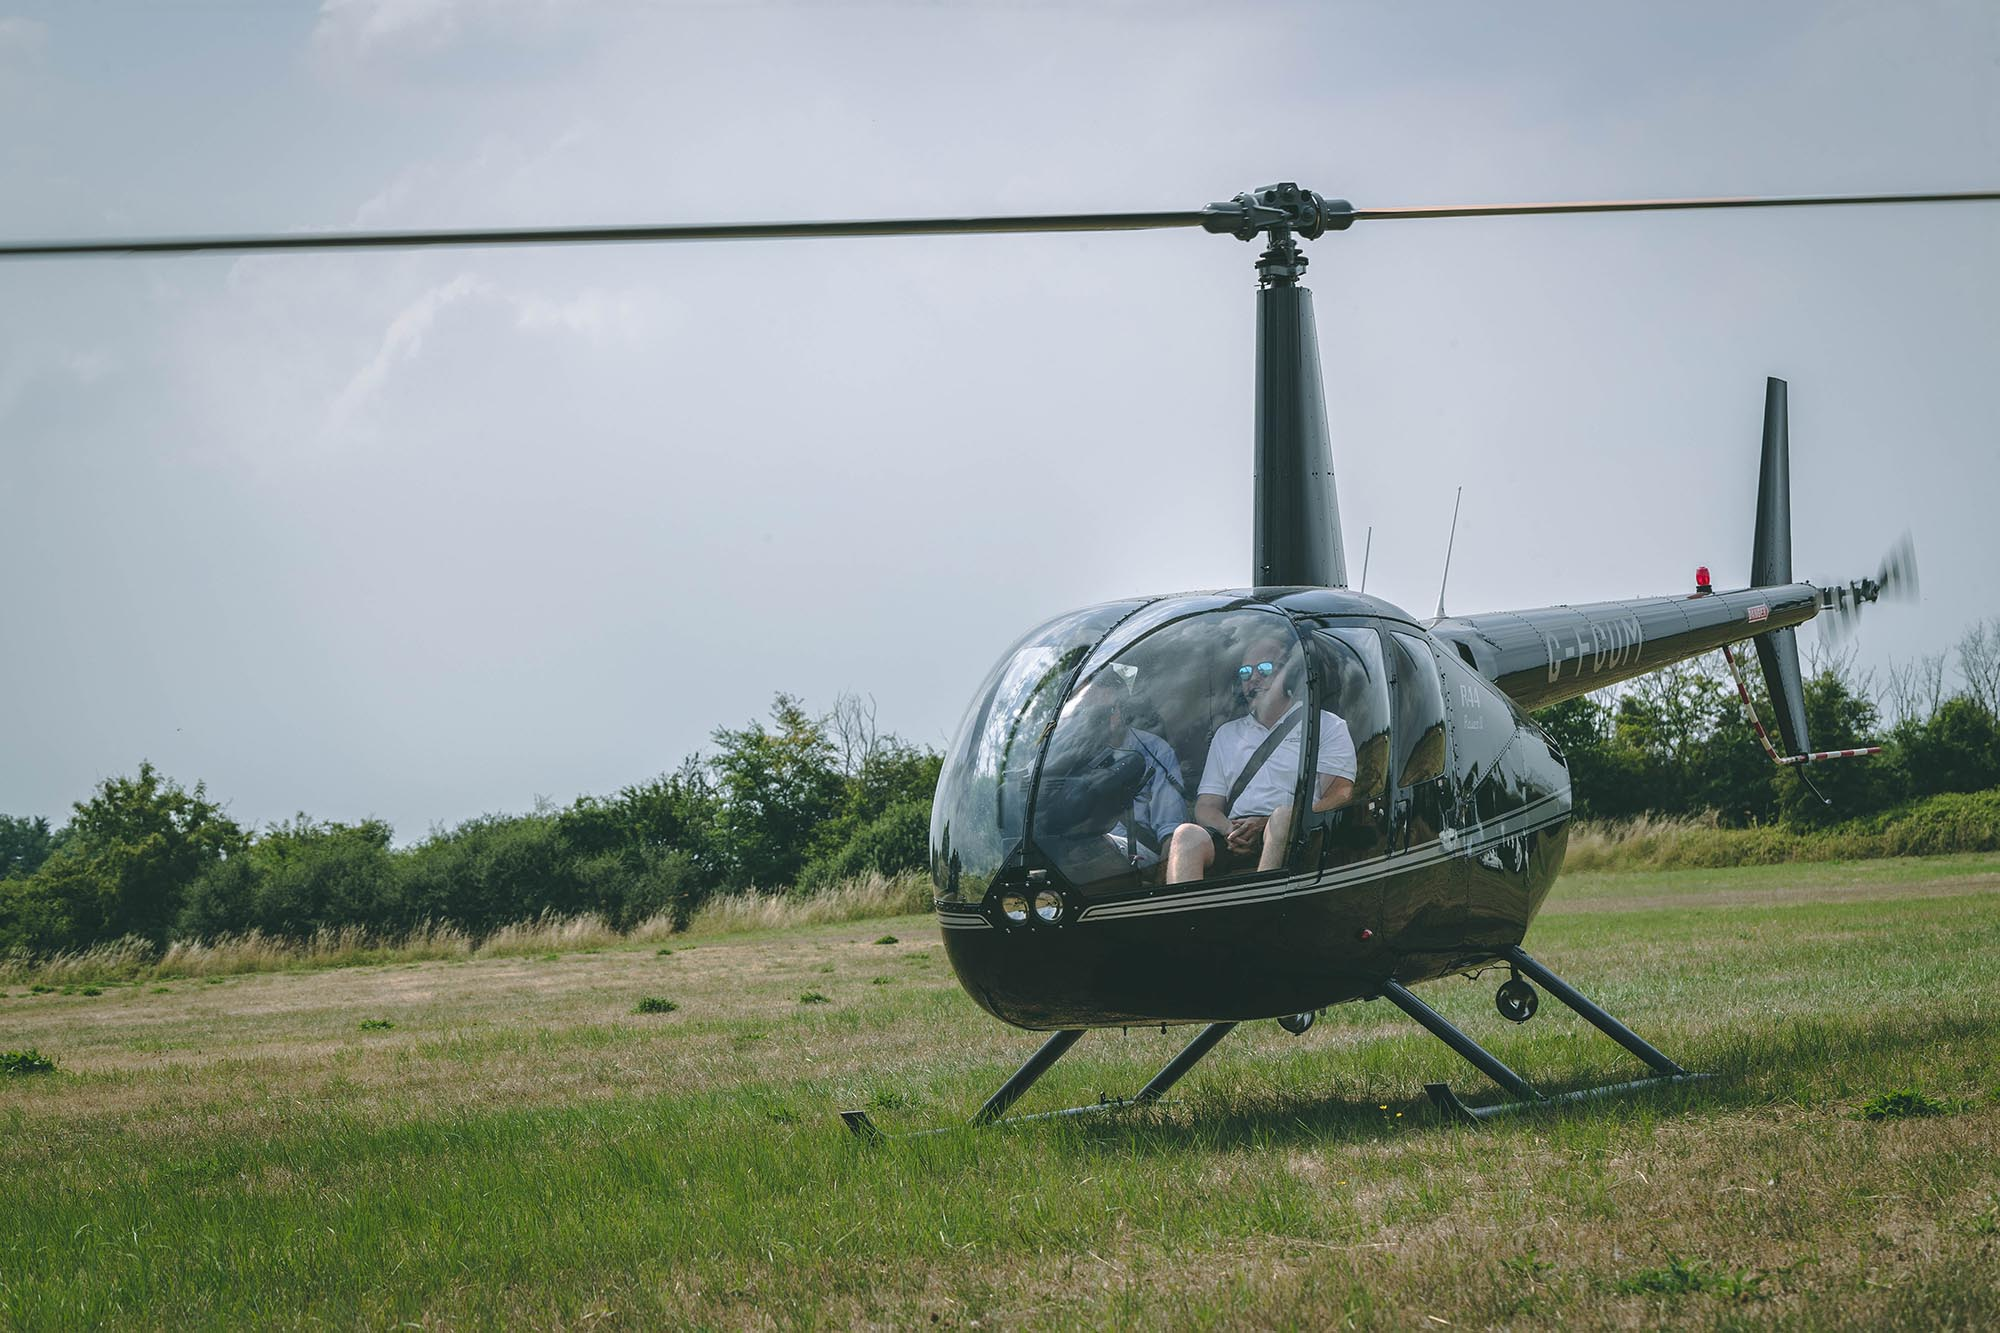 Hummingbird helicopters r44 with pilots taking off in field